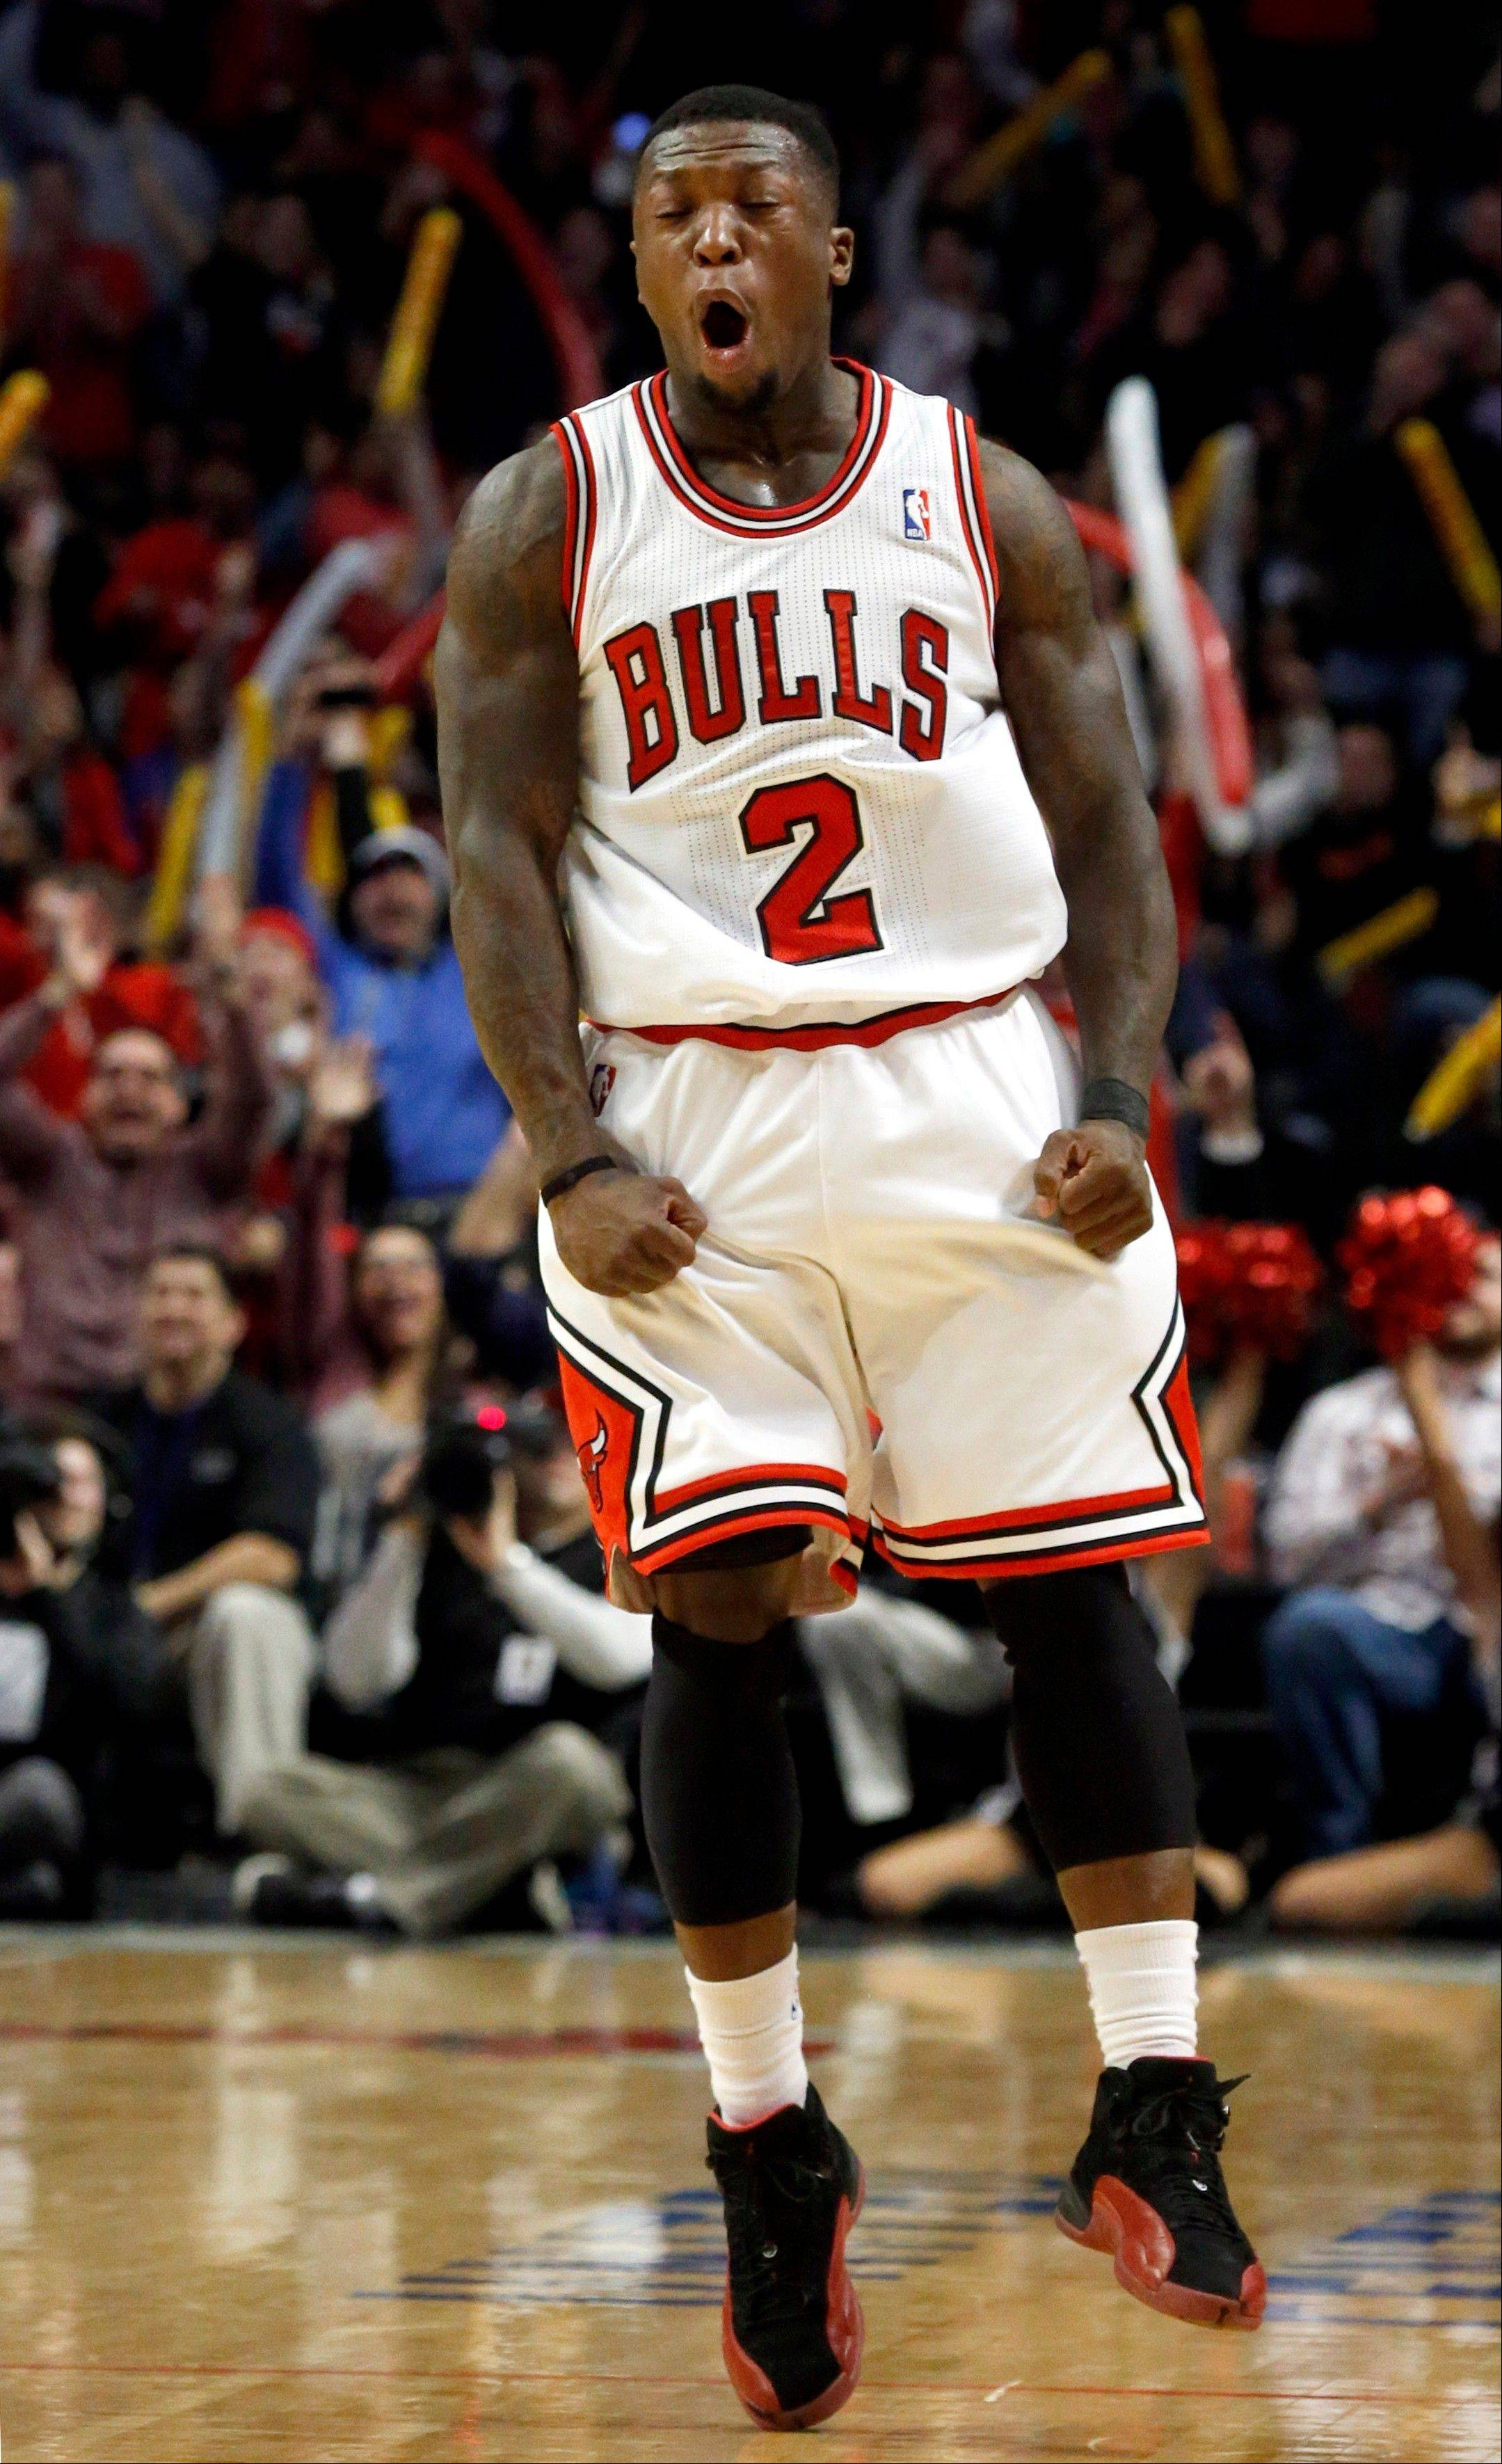 Guard Nate Robinson scored 9 straight fourth-quarter points Wednesday to spark the Bulls' victory over Detroit.